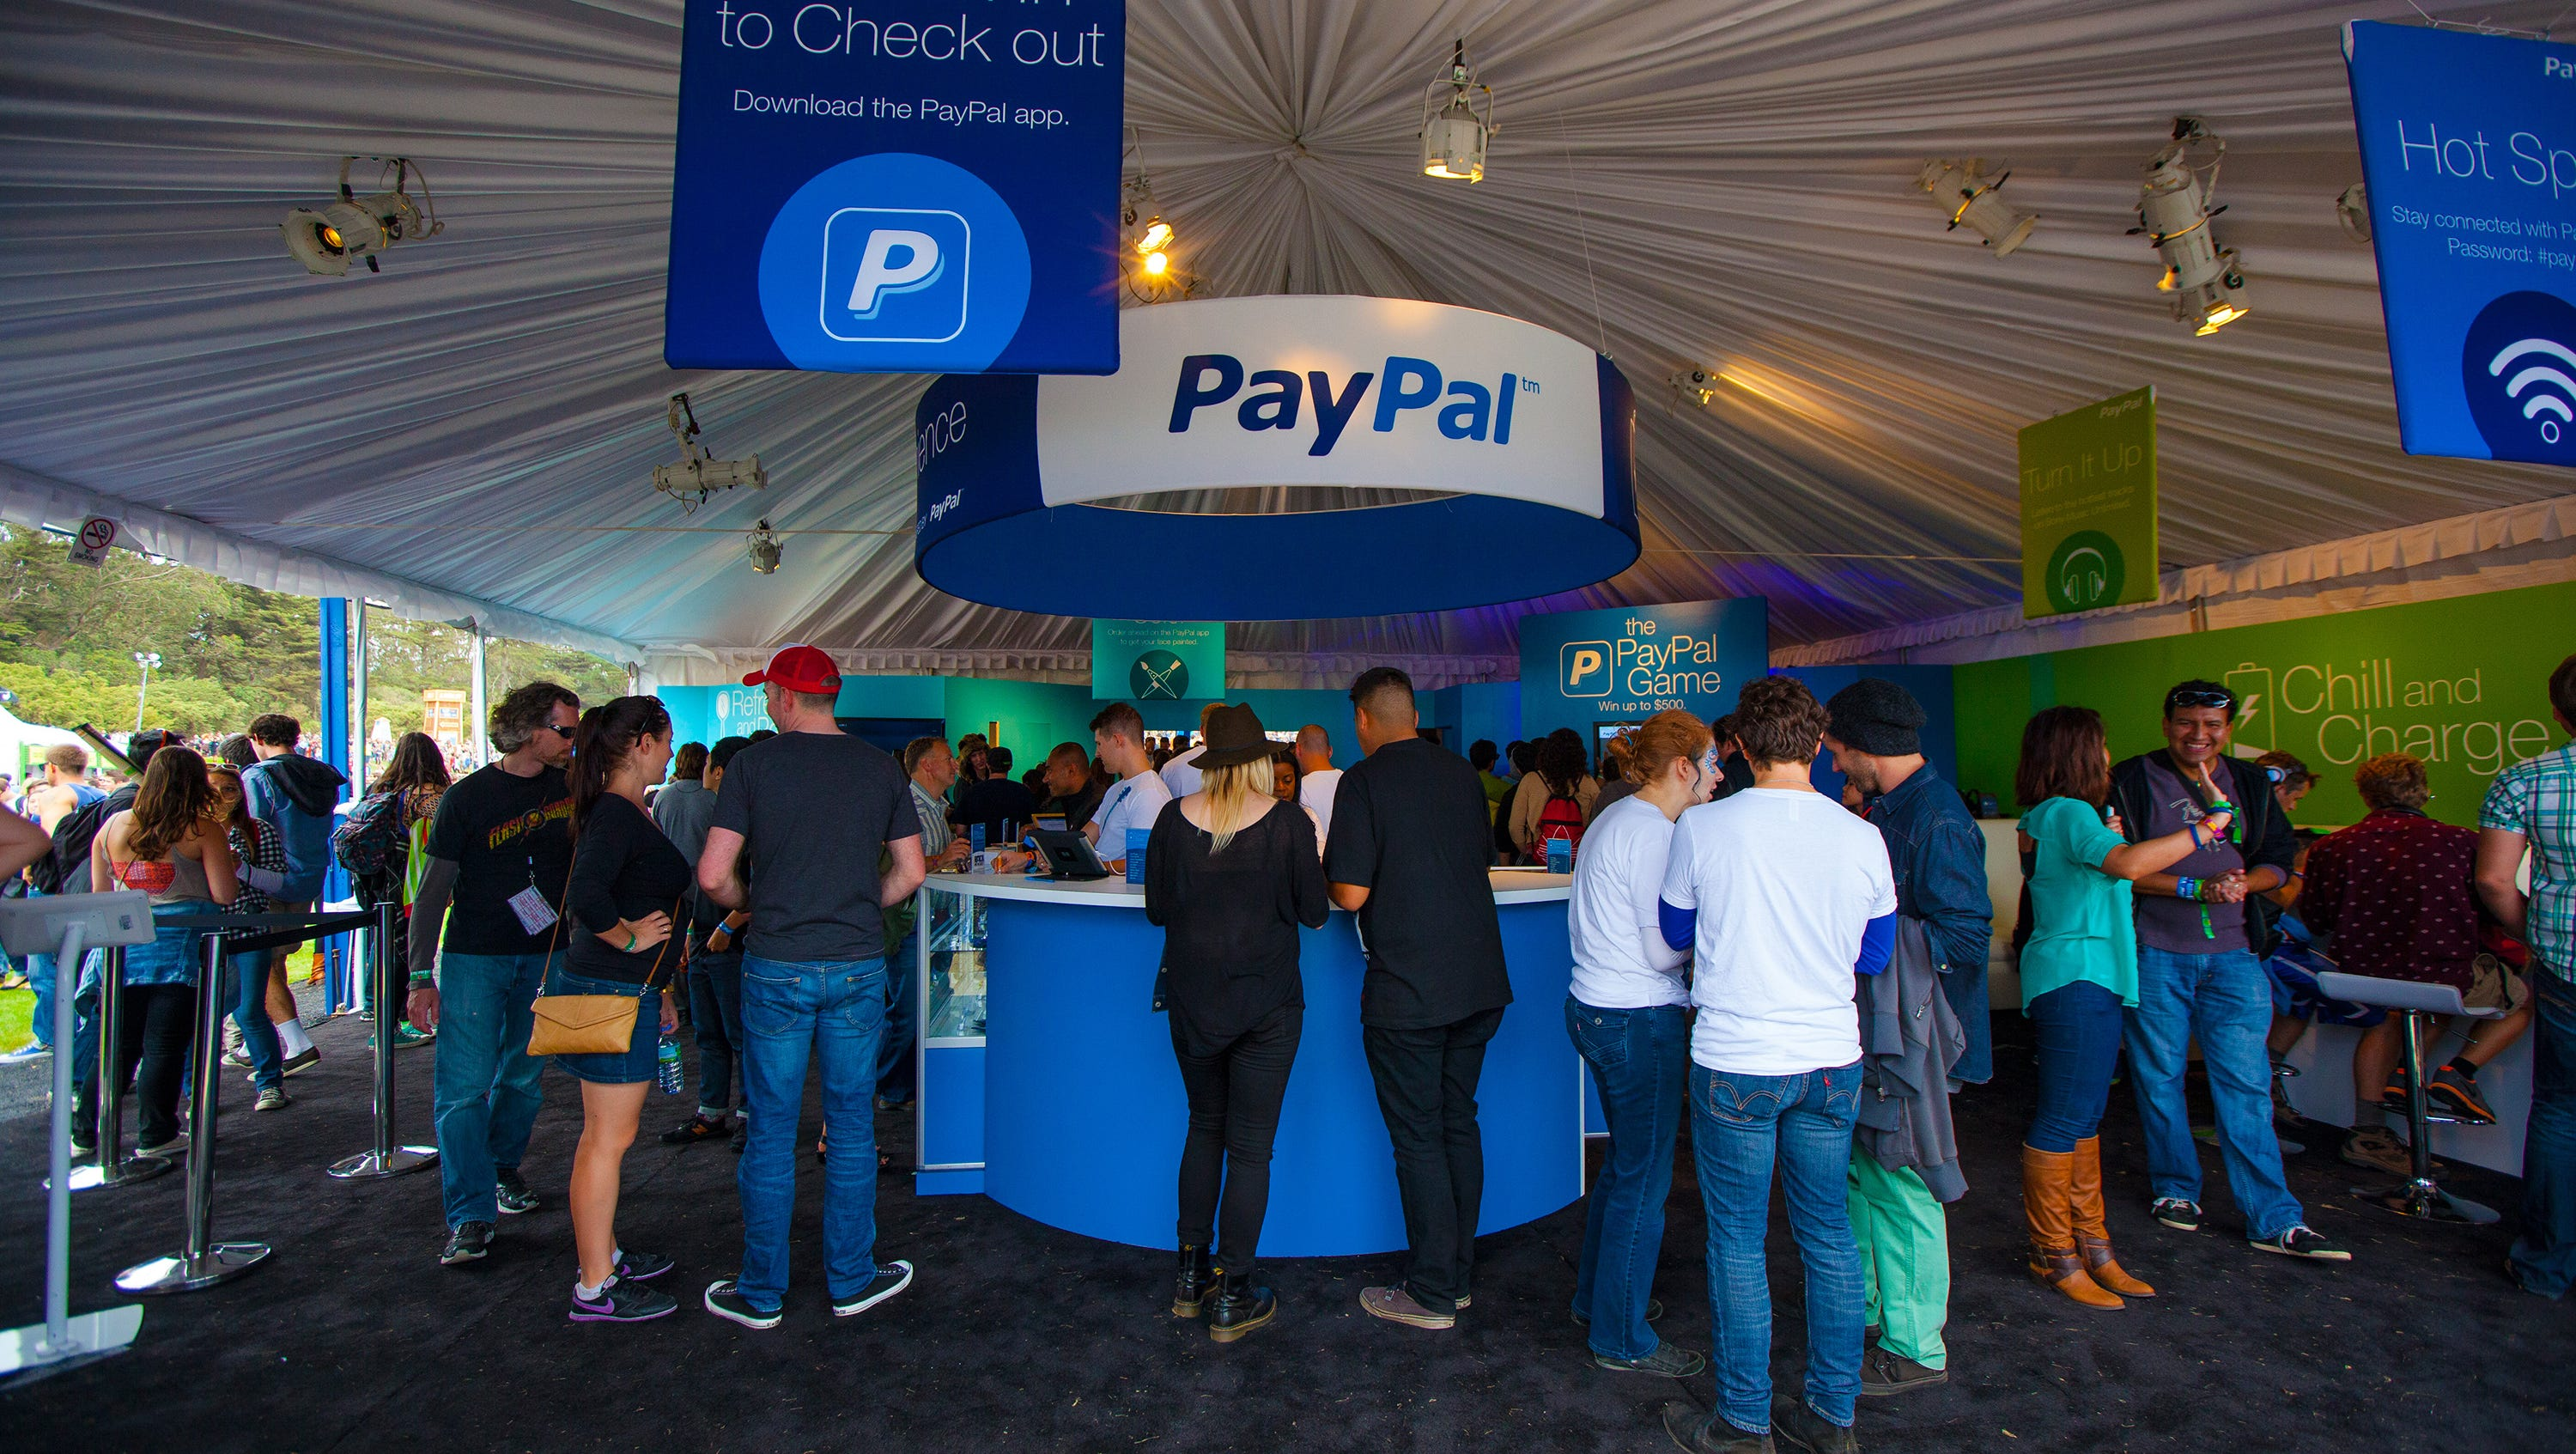 Paypal agrees to acquire braintree for 800 million biocorpaavc Choice Image